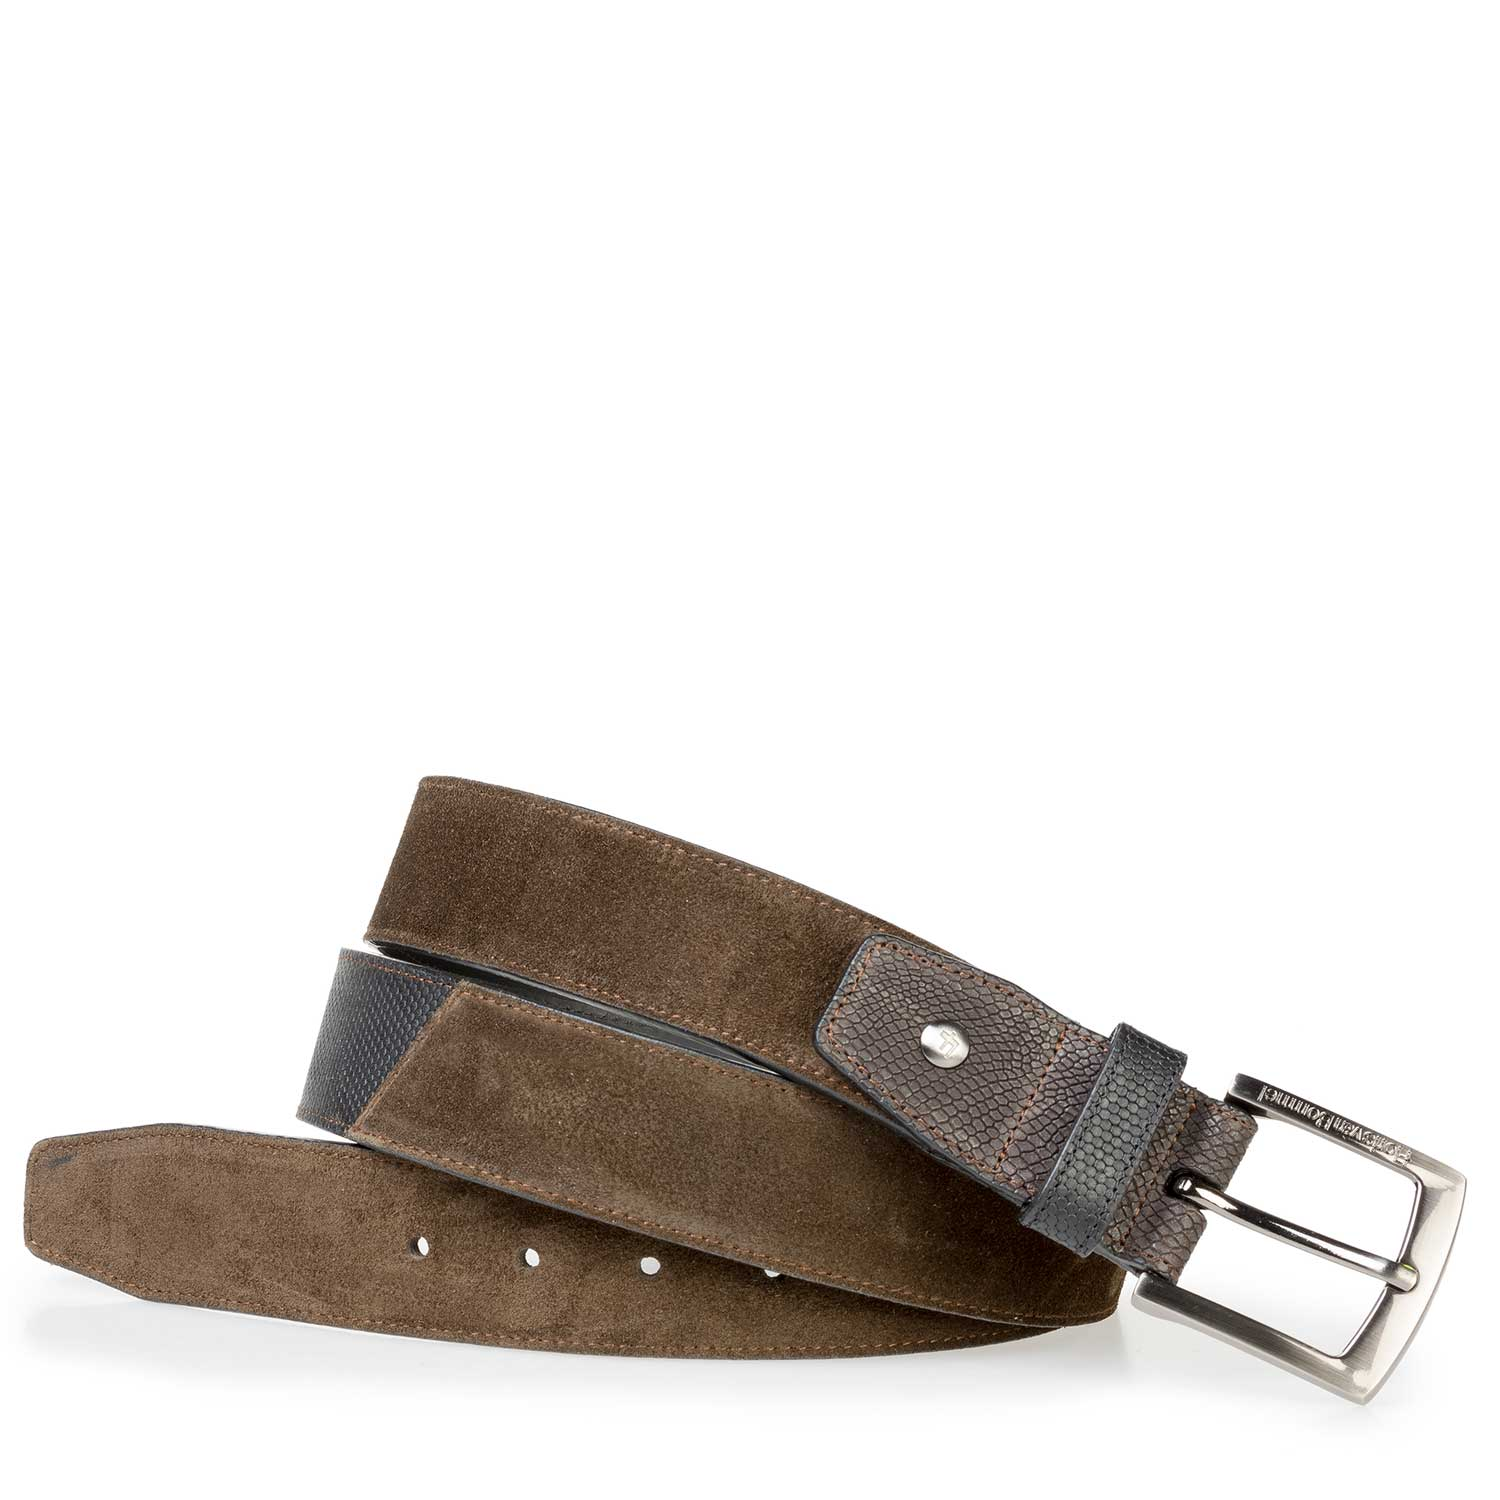 75161/15 - Olive green calf suede leather belt